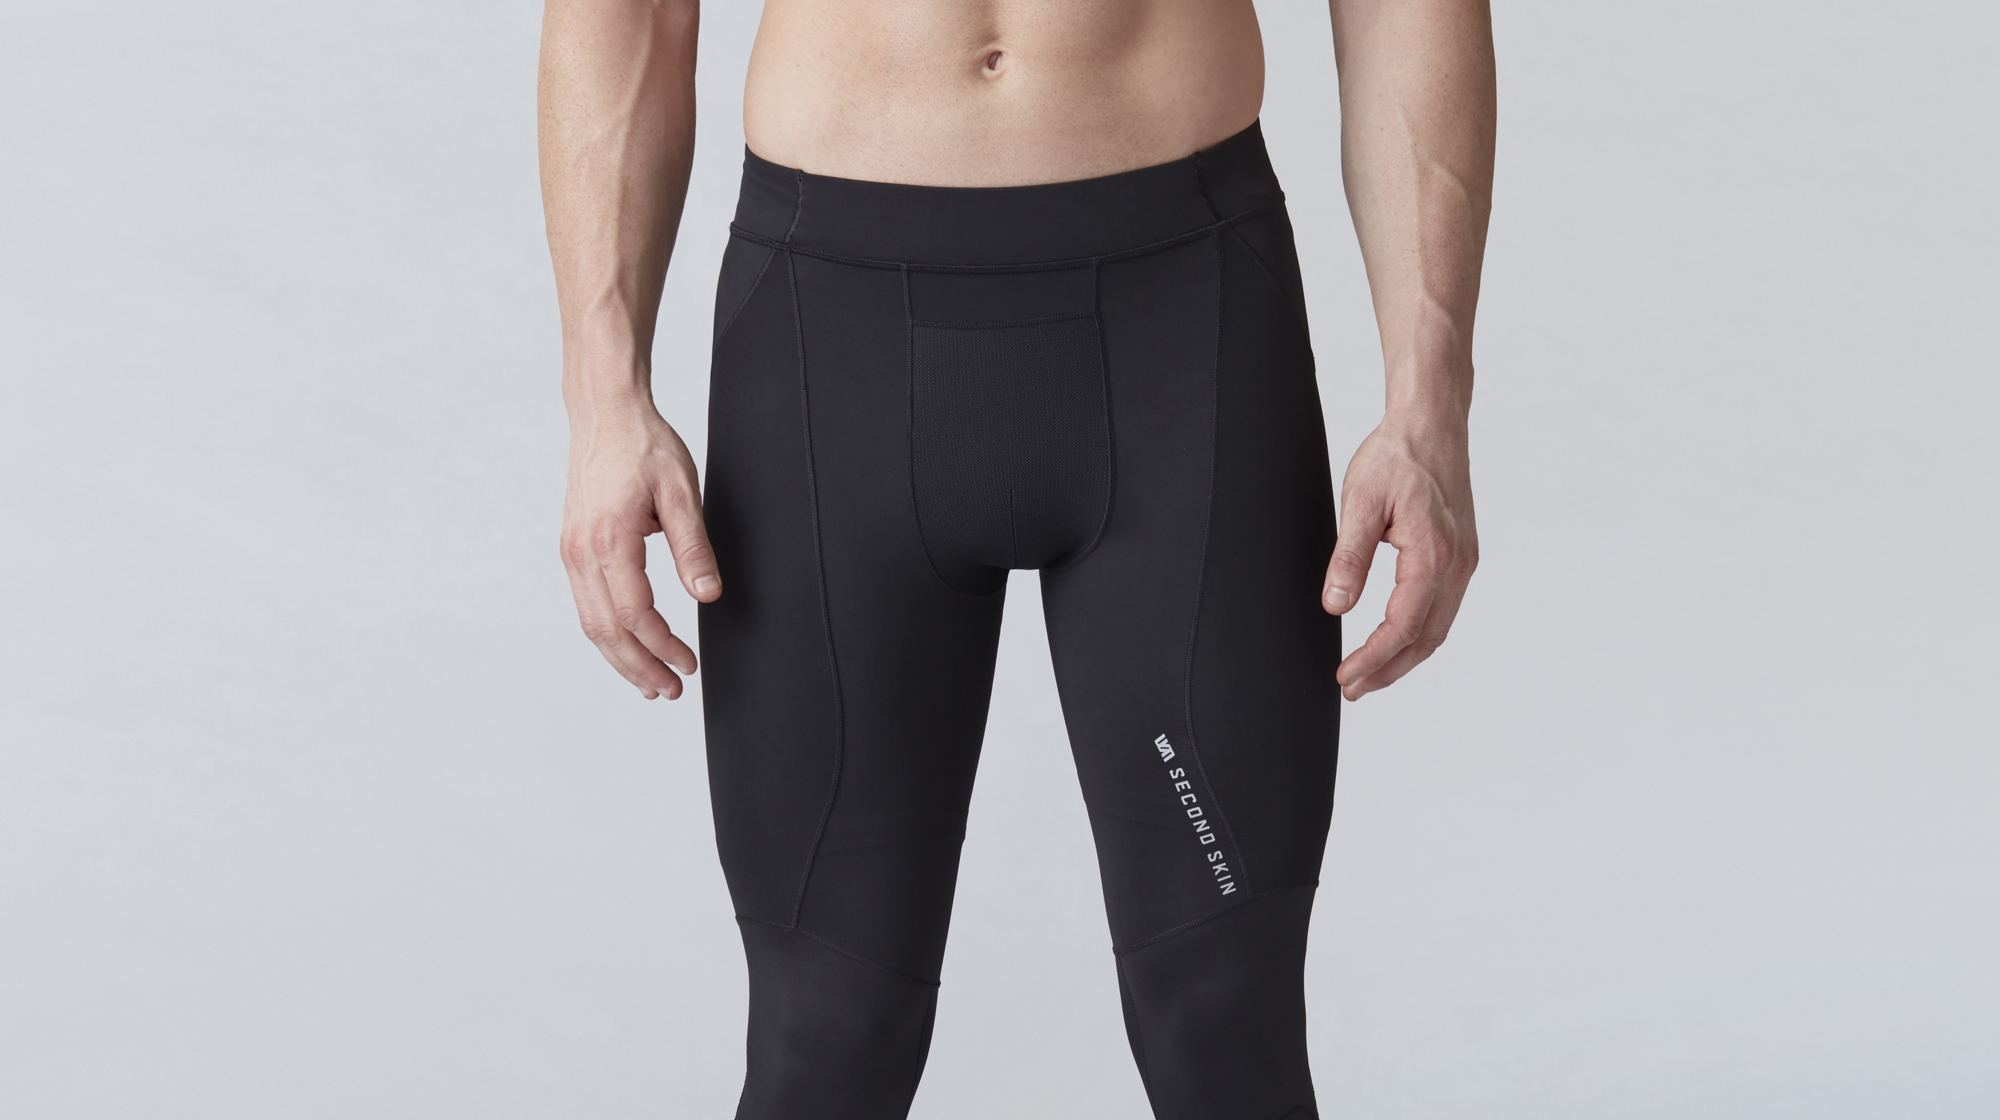 second-skin-mens-qautroflx-compression-tights-e7ae0b0e-c50b-4acf-ab28-bf78798dfd46